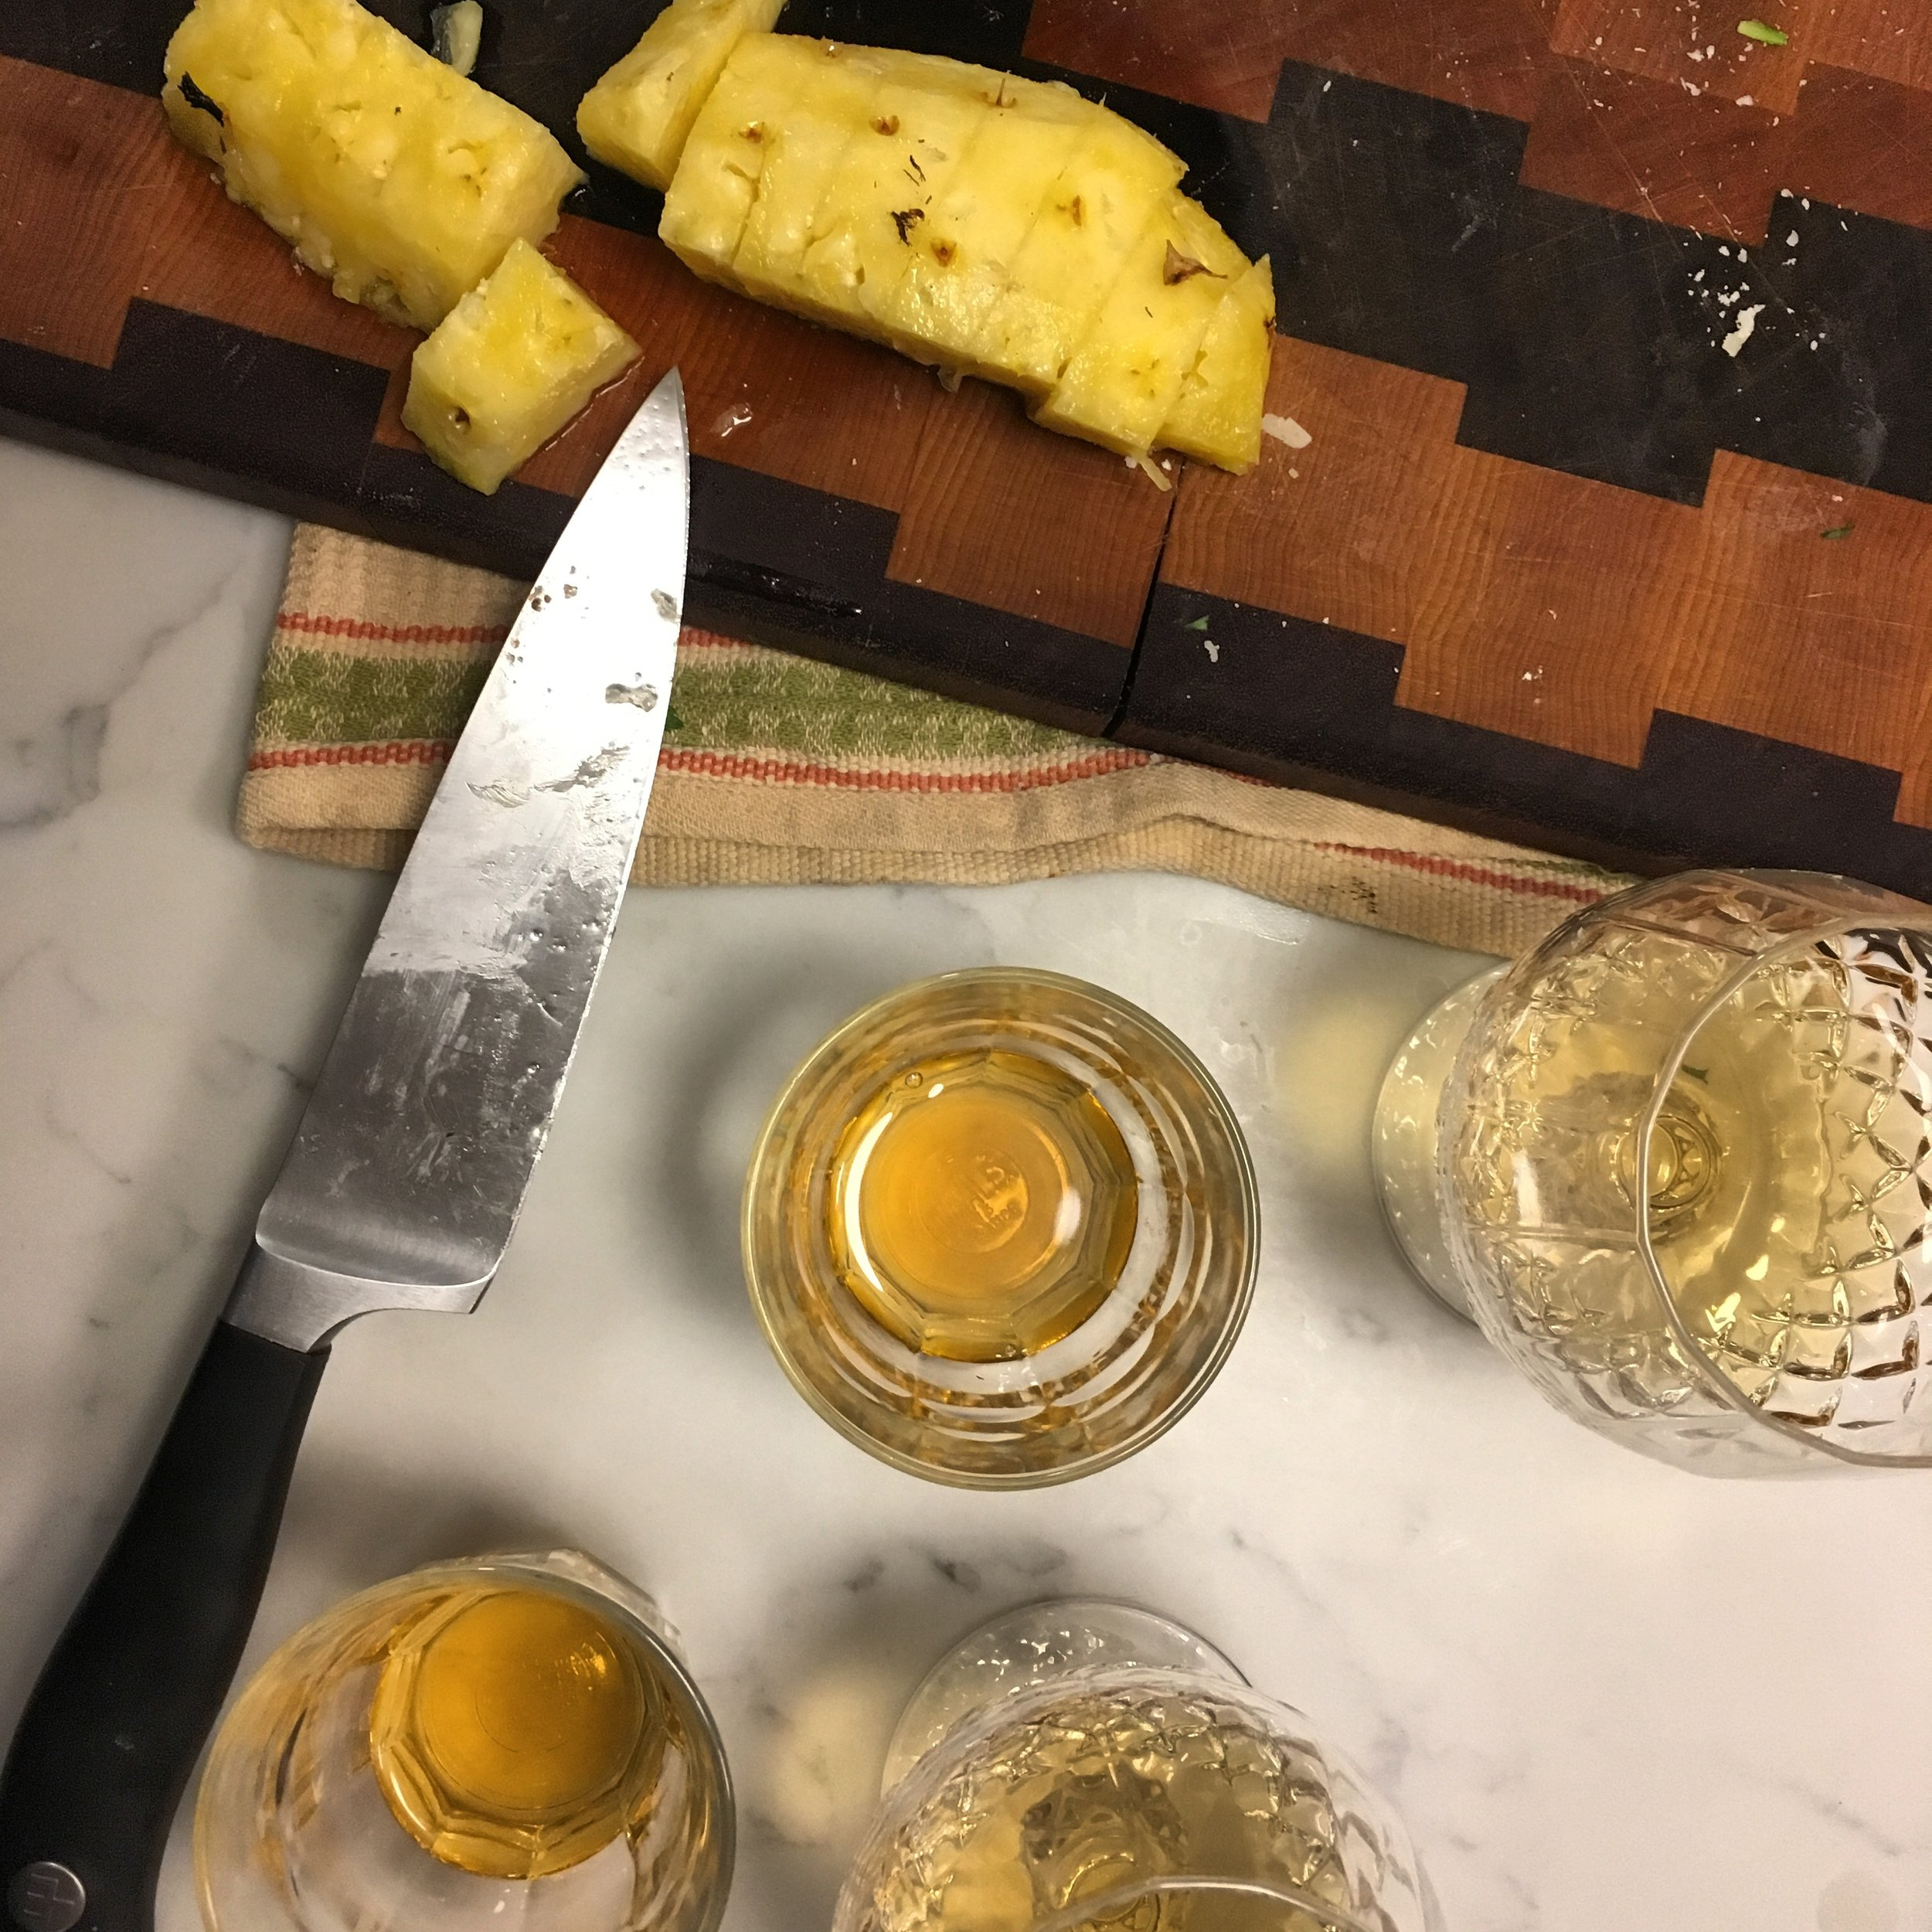 One of our favorite surprise pairings - ripe, juicy pineapple and Highland Park 12 Year Viking Honour Single Malt Scotch -